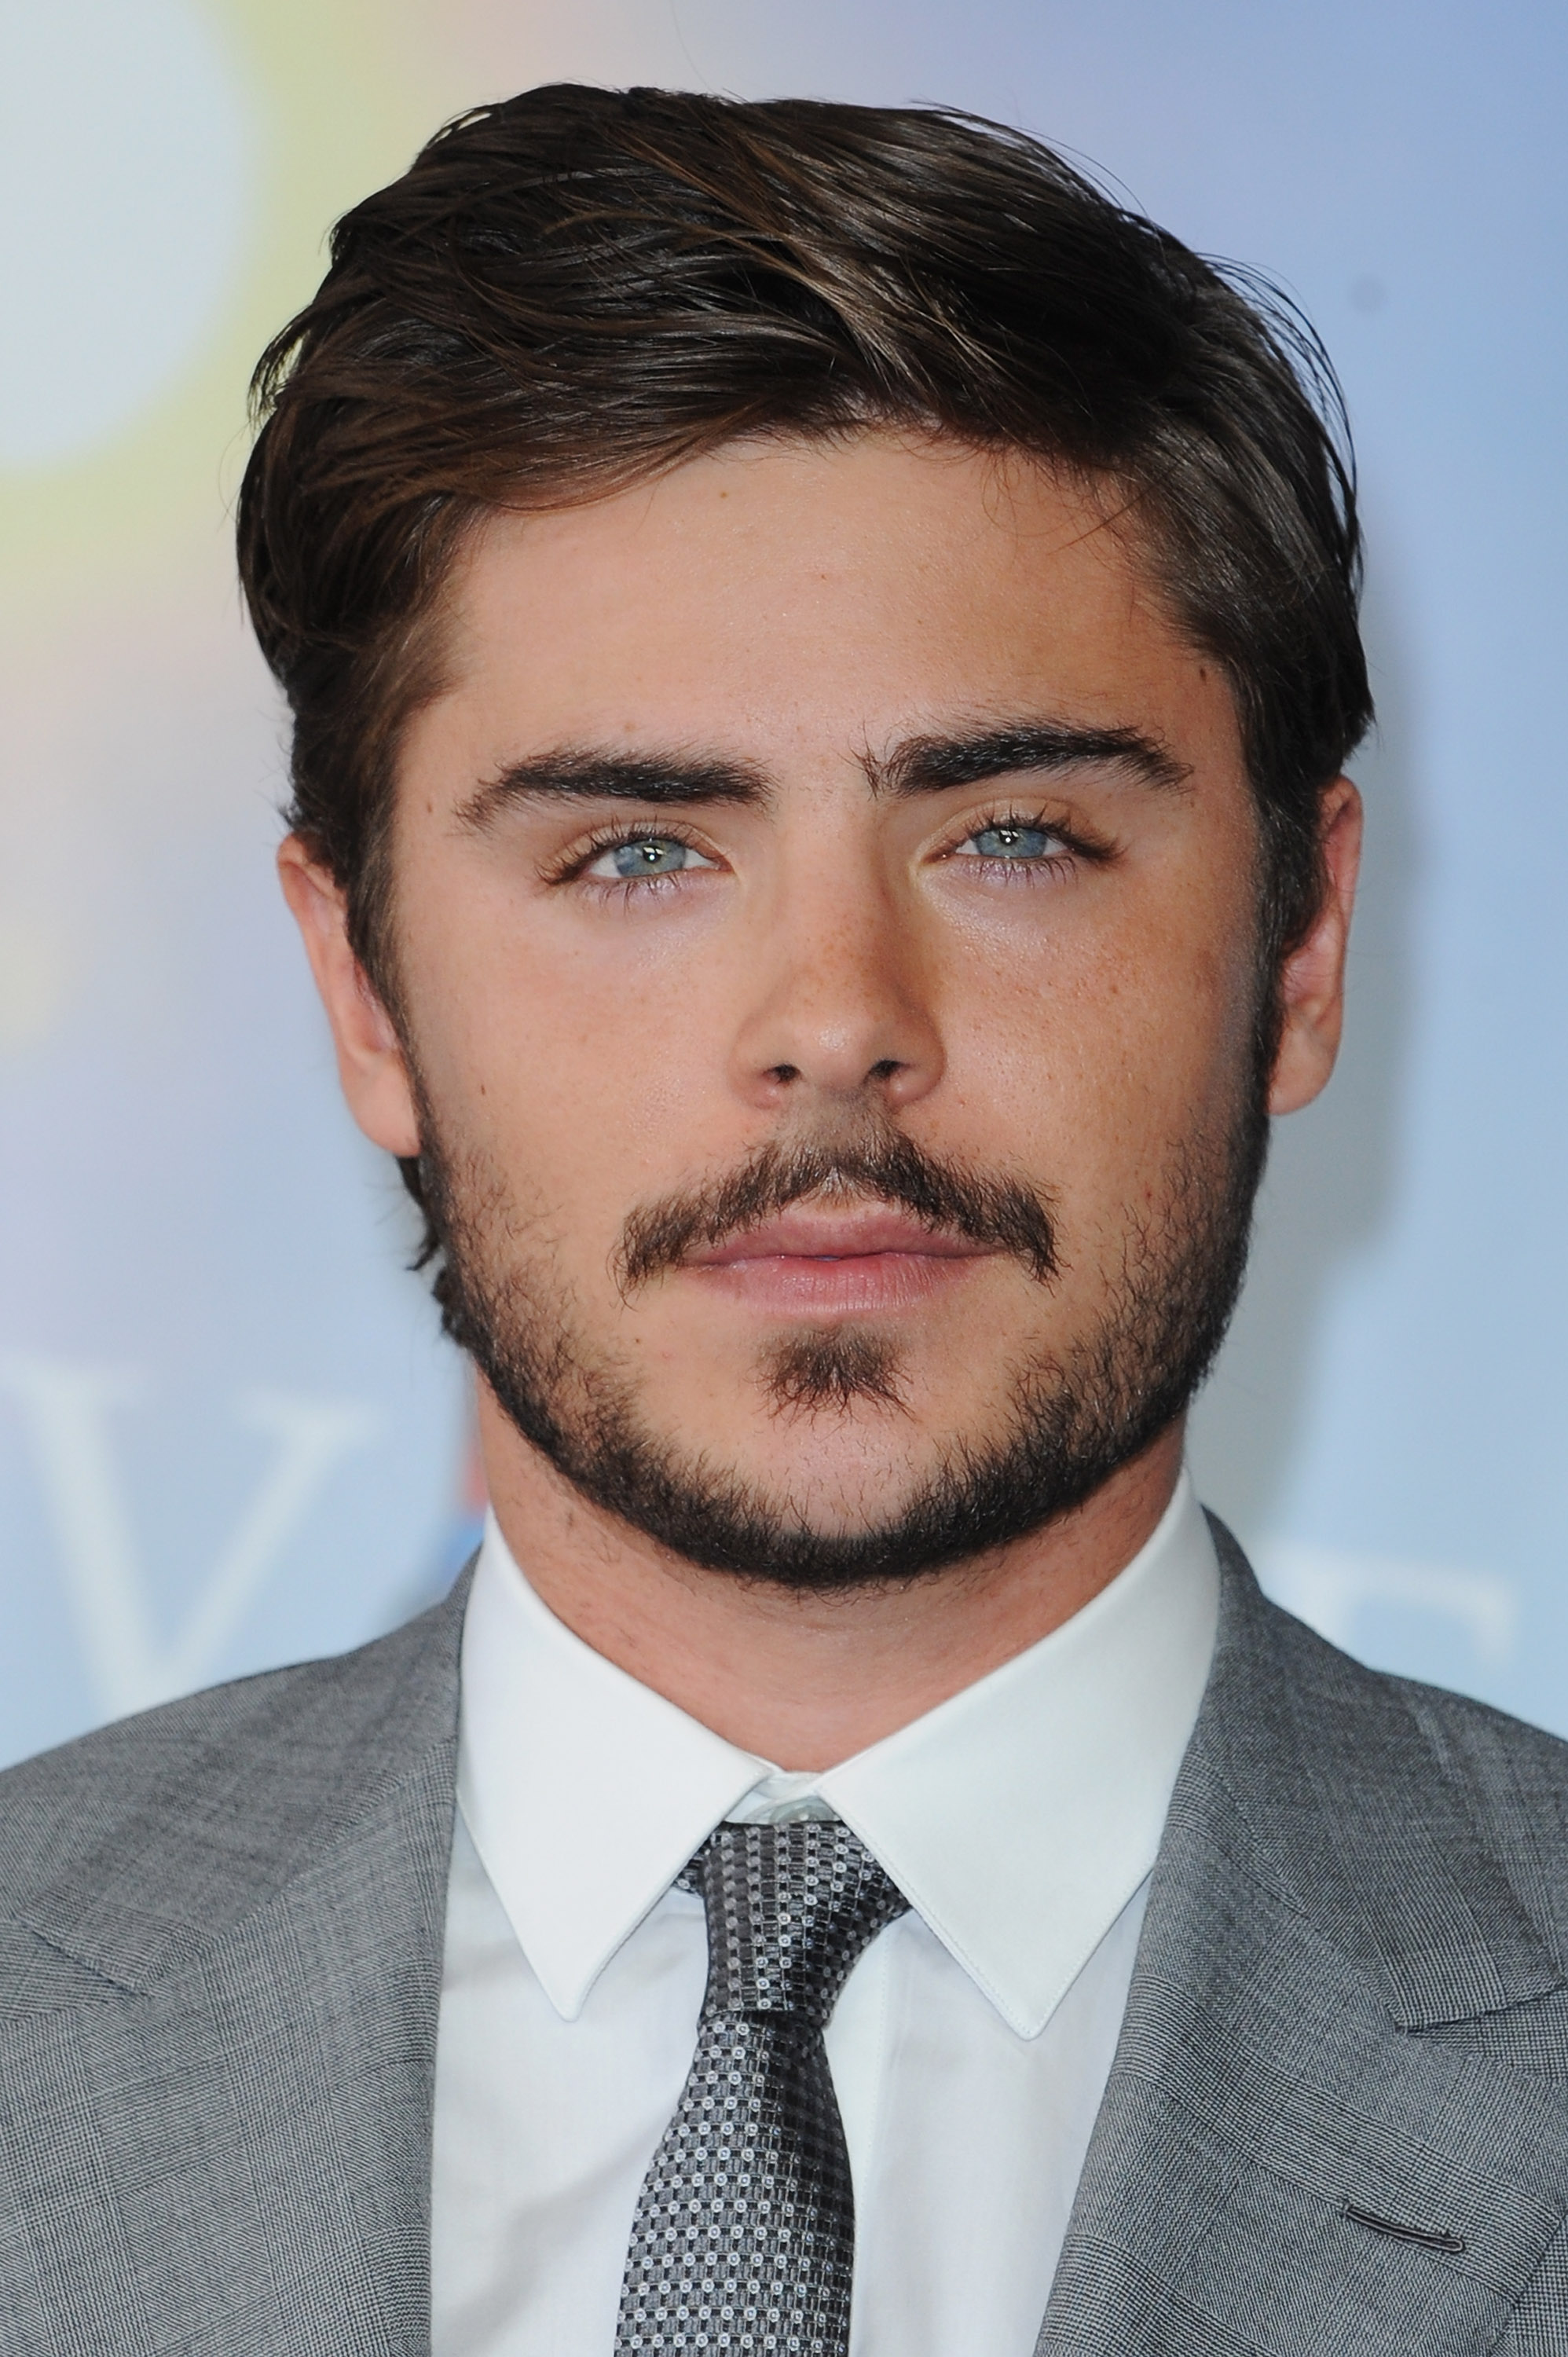 ranking zac efron 39 s facial hair from fresh faced to ron swanson 39 stache. Black Bedroom Furniture Sets. Home Design Ideas